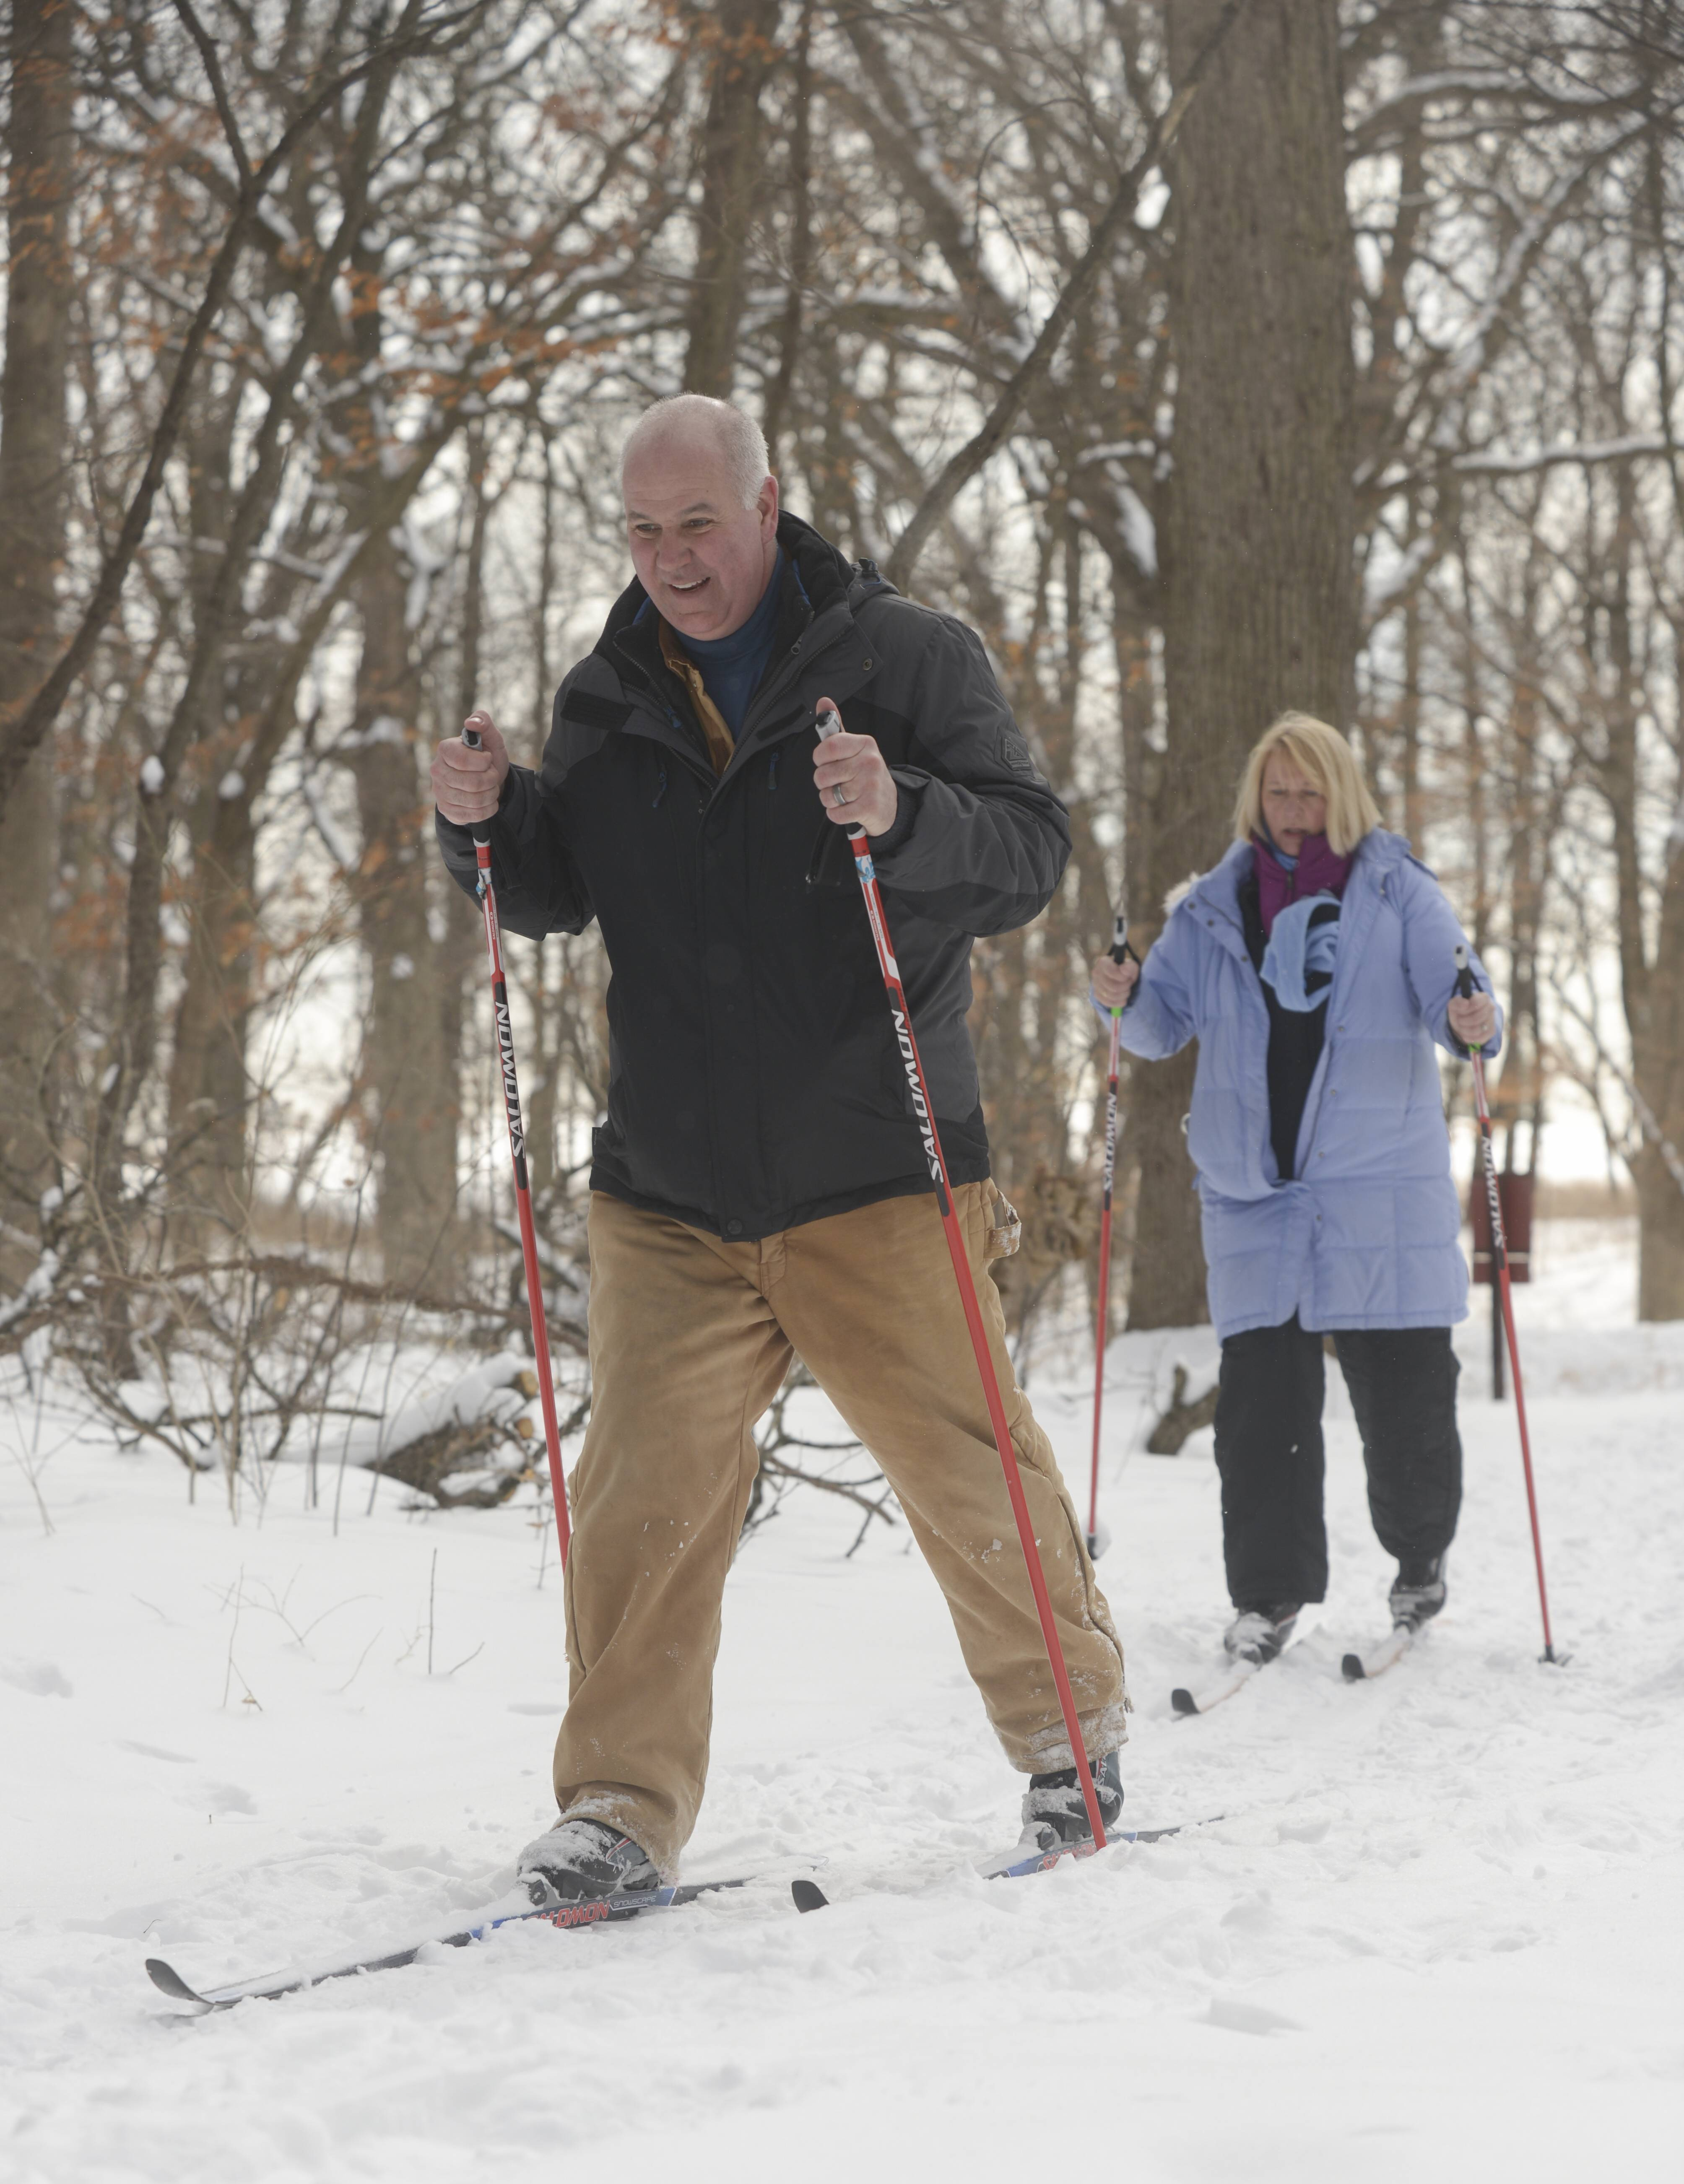 Greg and Maredith Stoffel of Batavia venture into the woods Monday along one of the many trails at the Morton Arboretum in Lisle to do a bit of cross-country skiing. Maredith had not skied in 15 years and Greg had never tried it before.